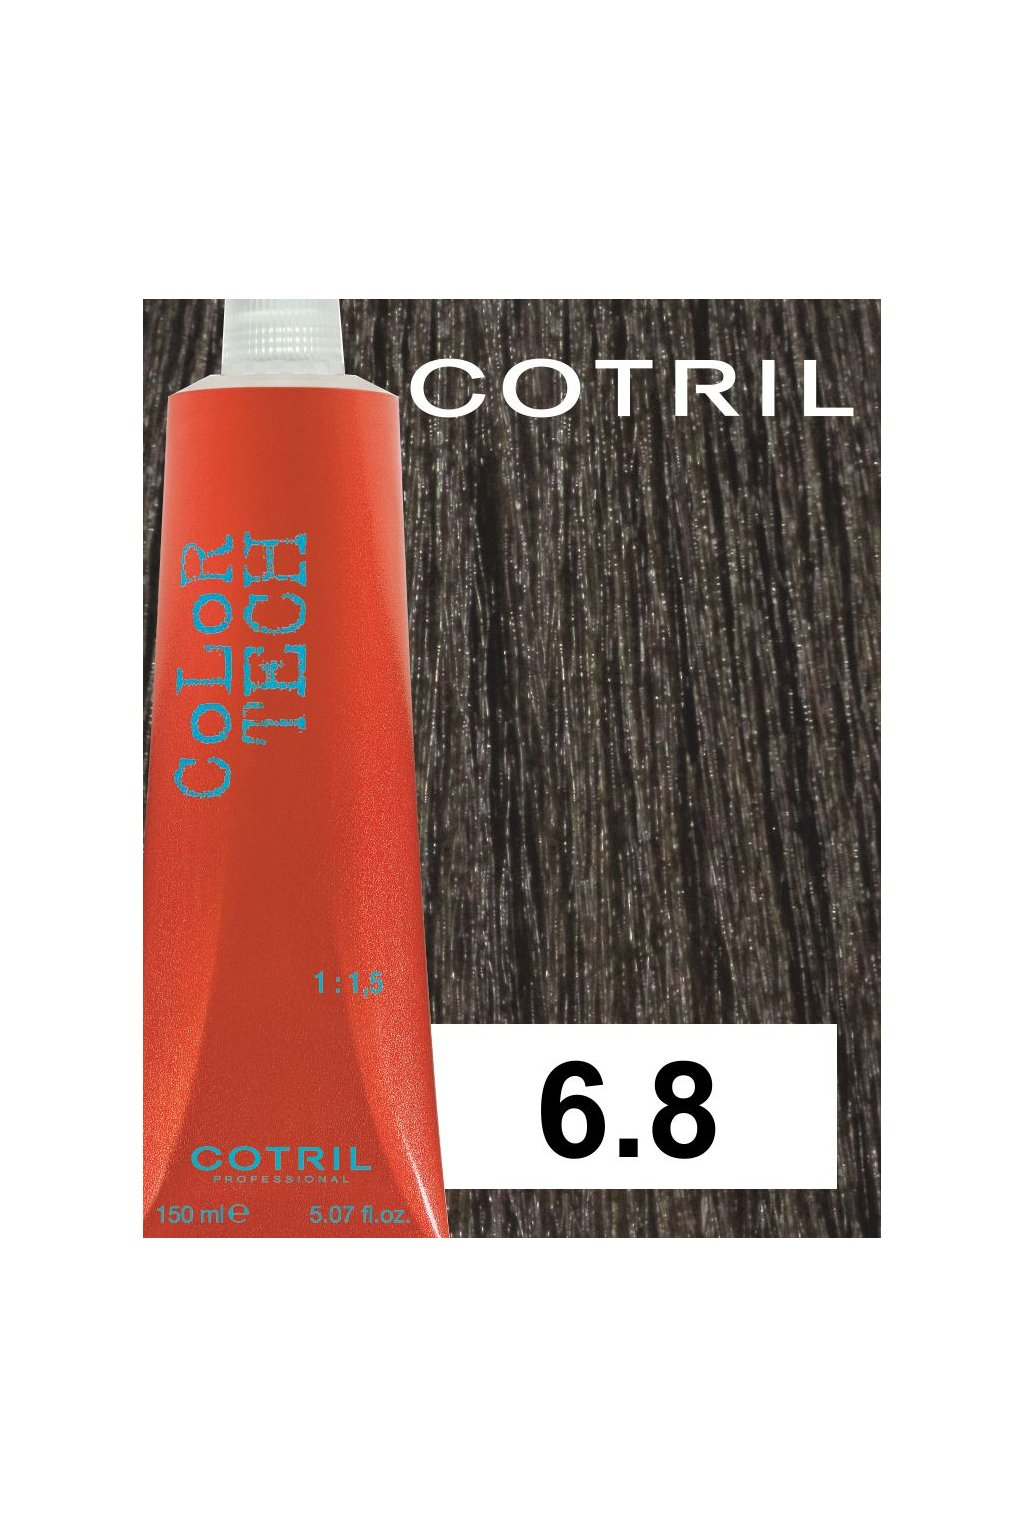 6 8 ct cotril